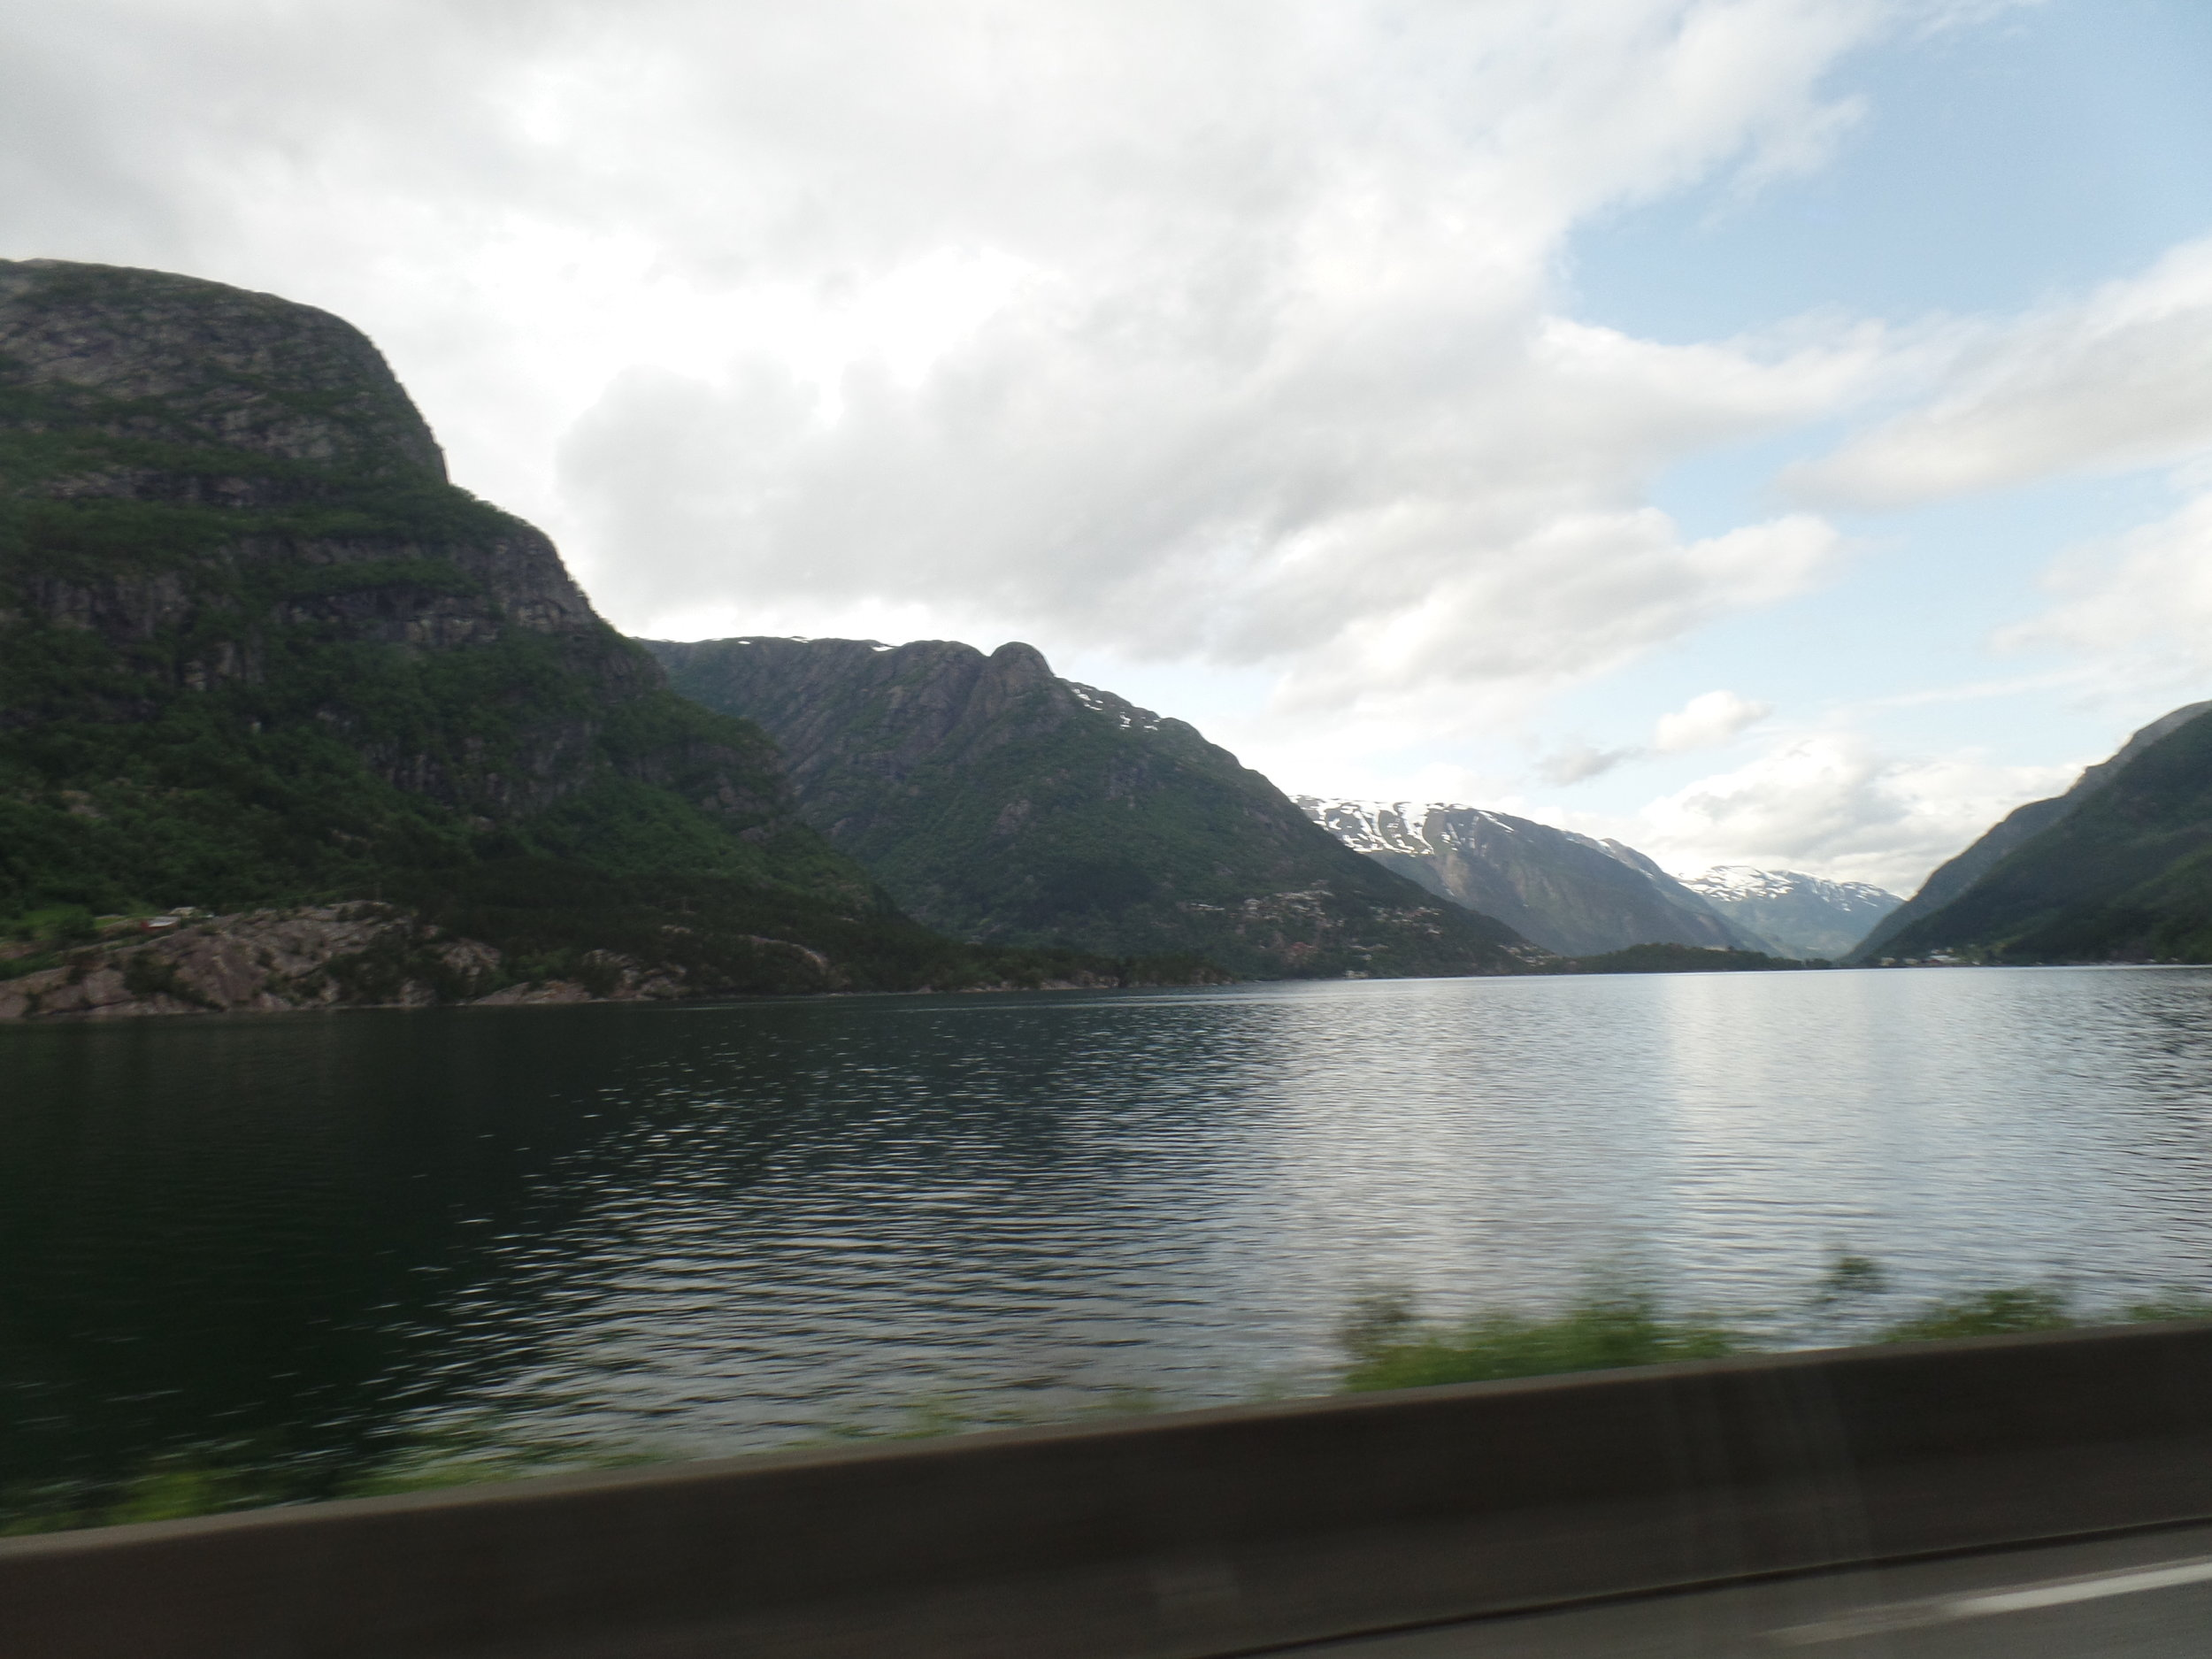 West Norway scenery